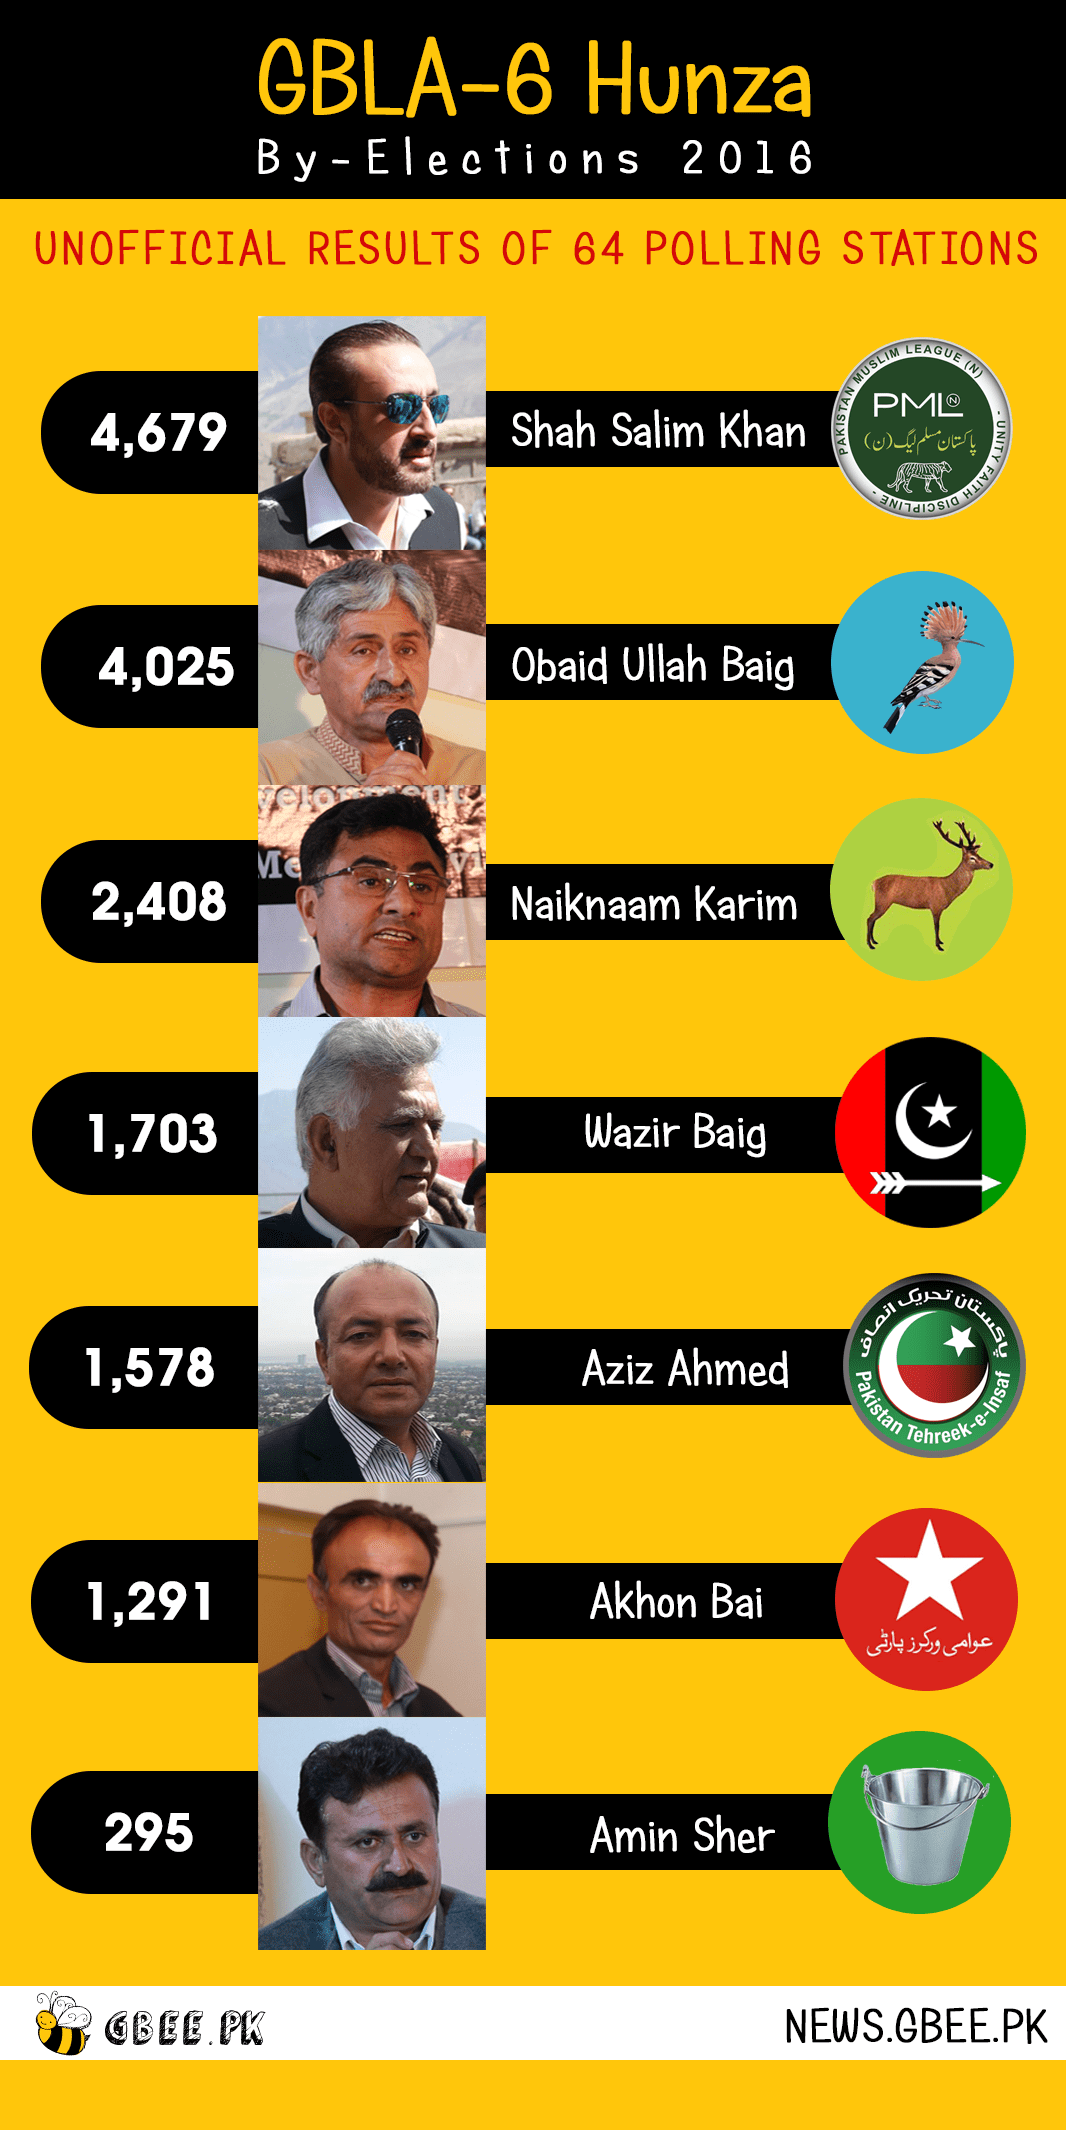 hunza-by-elections-2016-result